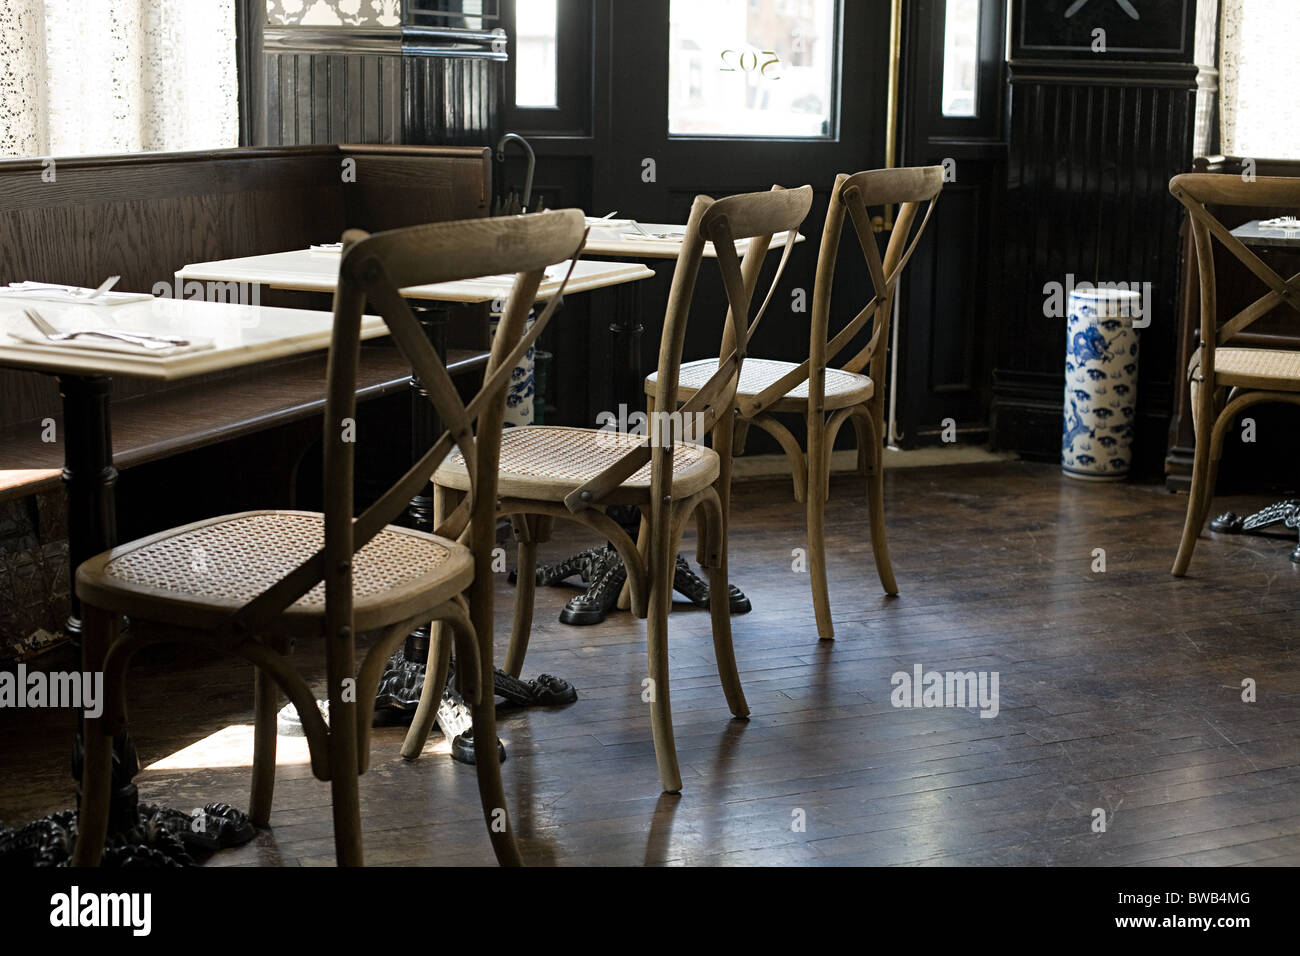 Chairs and tables in empty cafe - Stock Image